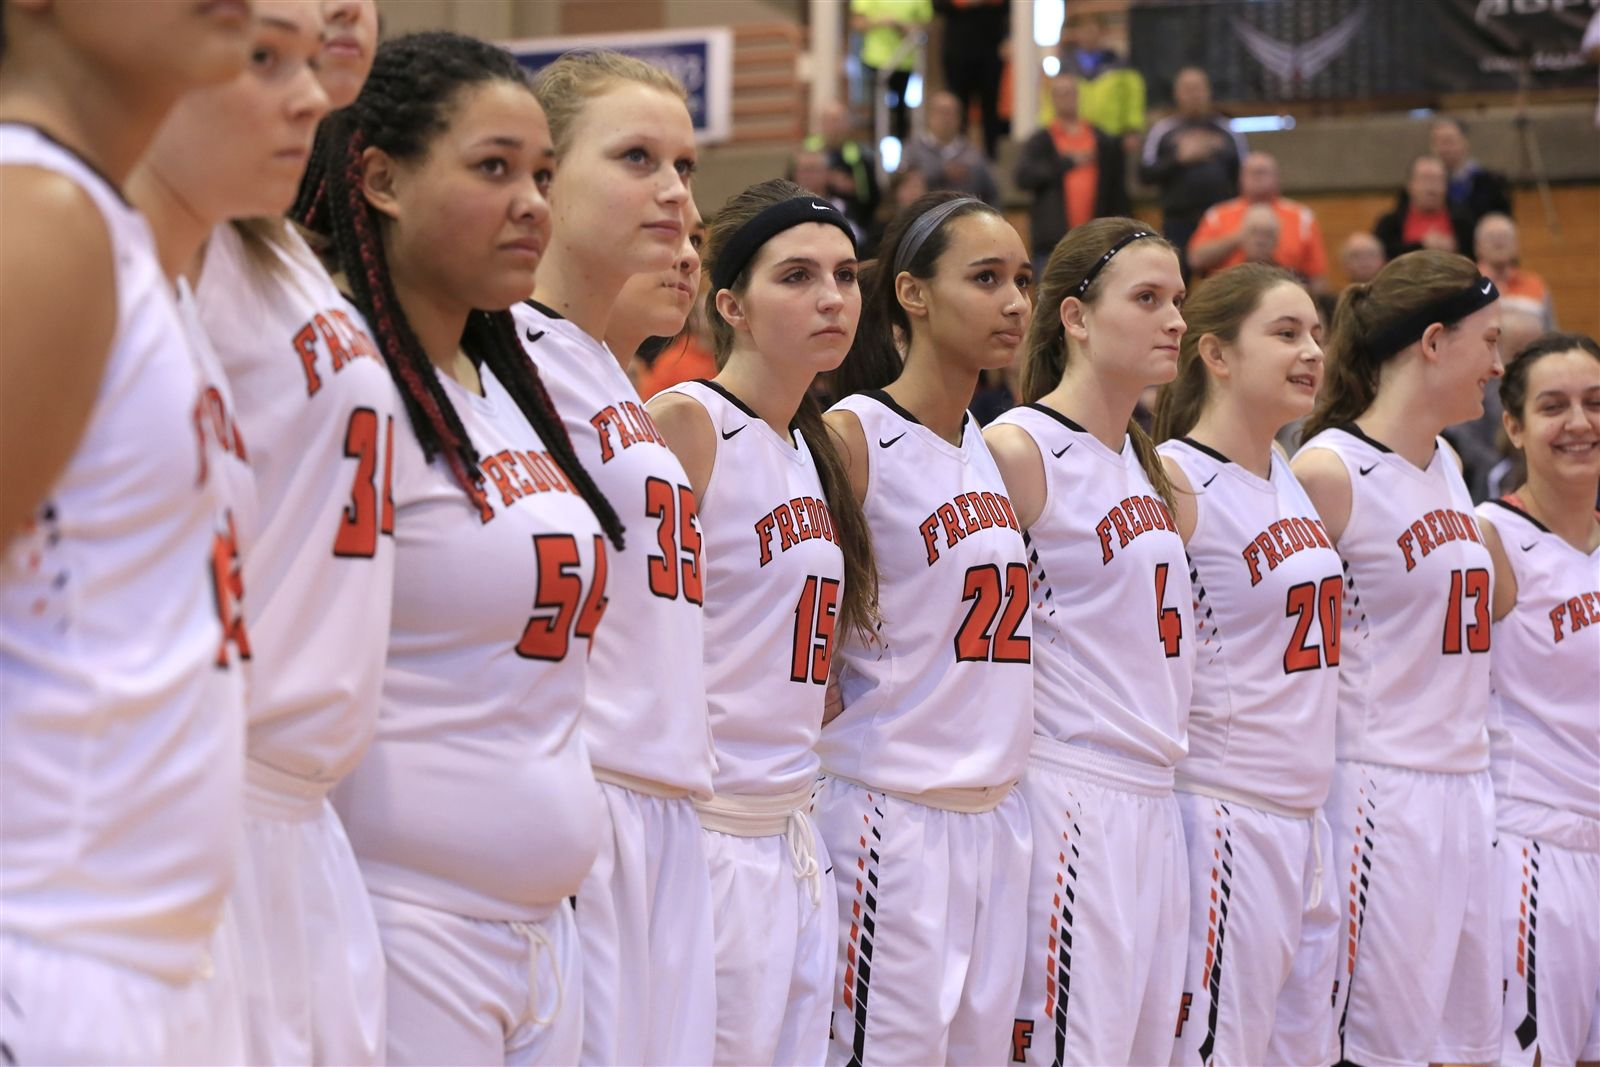 Fredonia players stand for the National Anthem prior to playing Southwestern in the B2 final at the Buffalo State Sports Arena  on Sunday, Feb. 28, 2016.